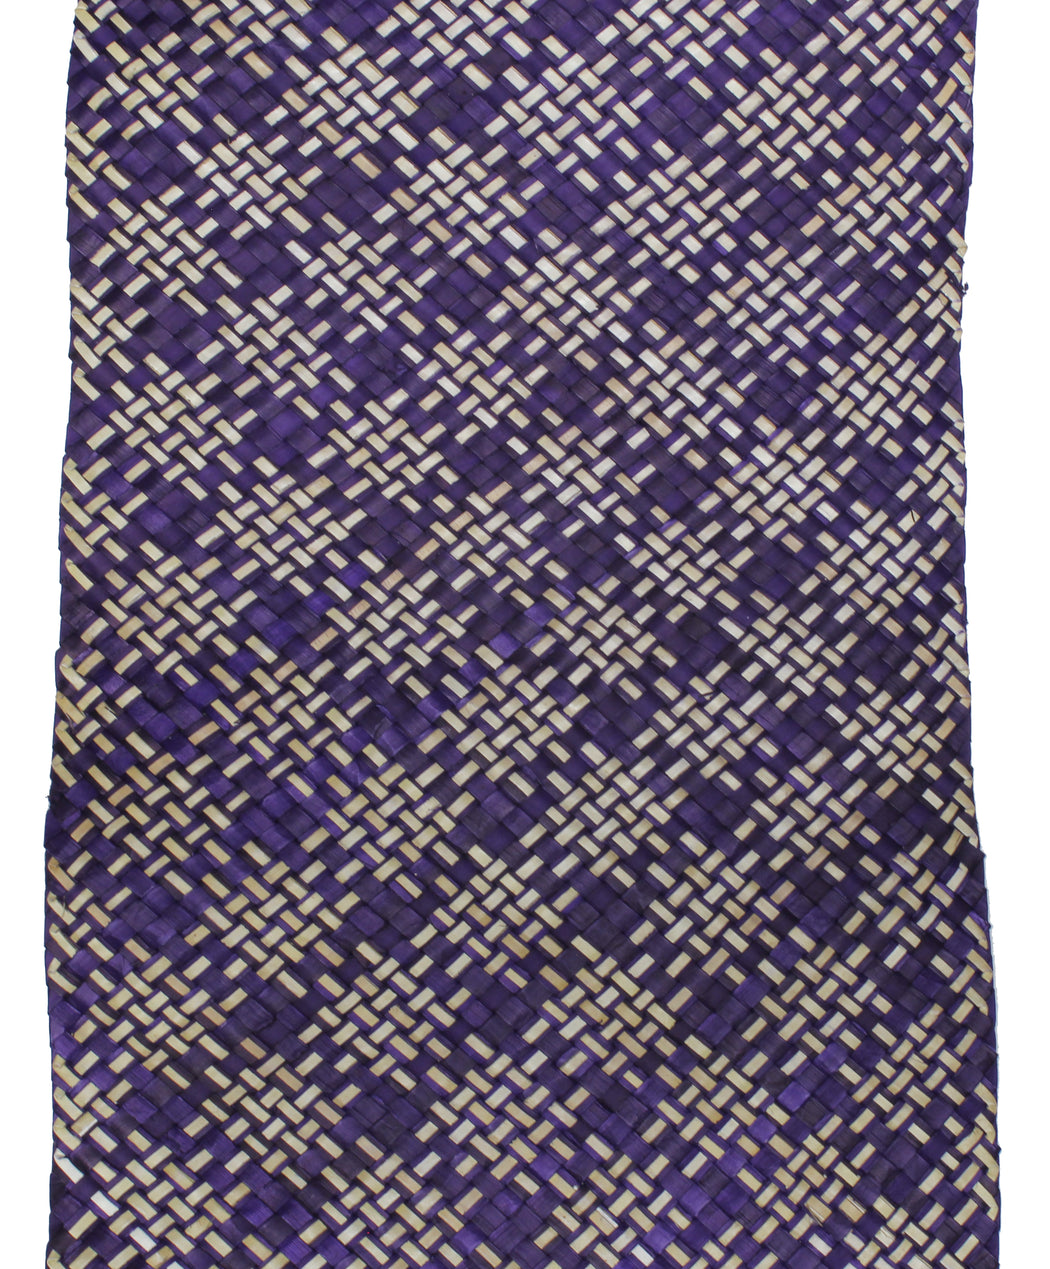 Table Runner Handwoven from Pandan Straw | Purple/Natural - Niger Bend